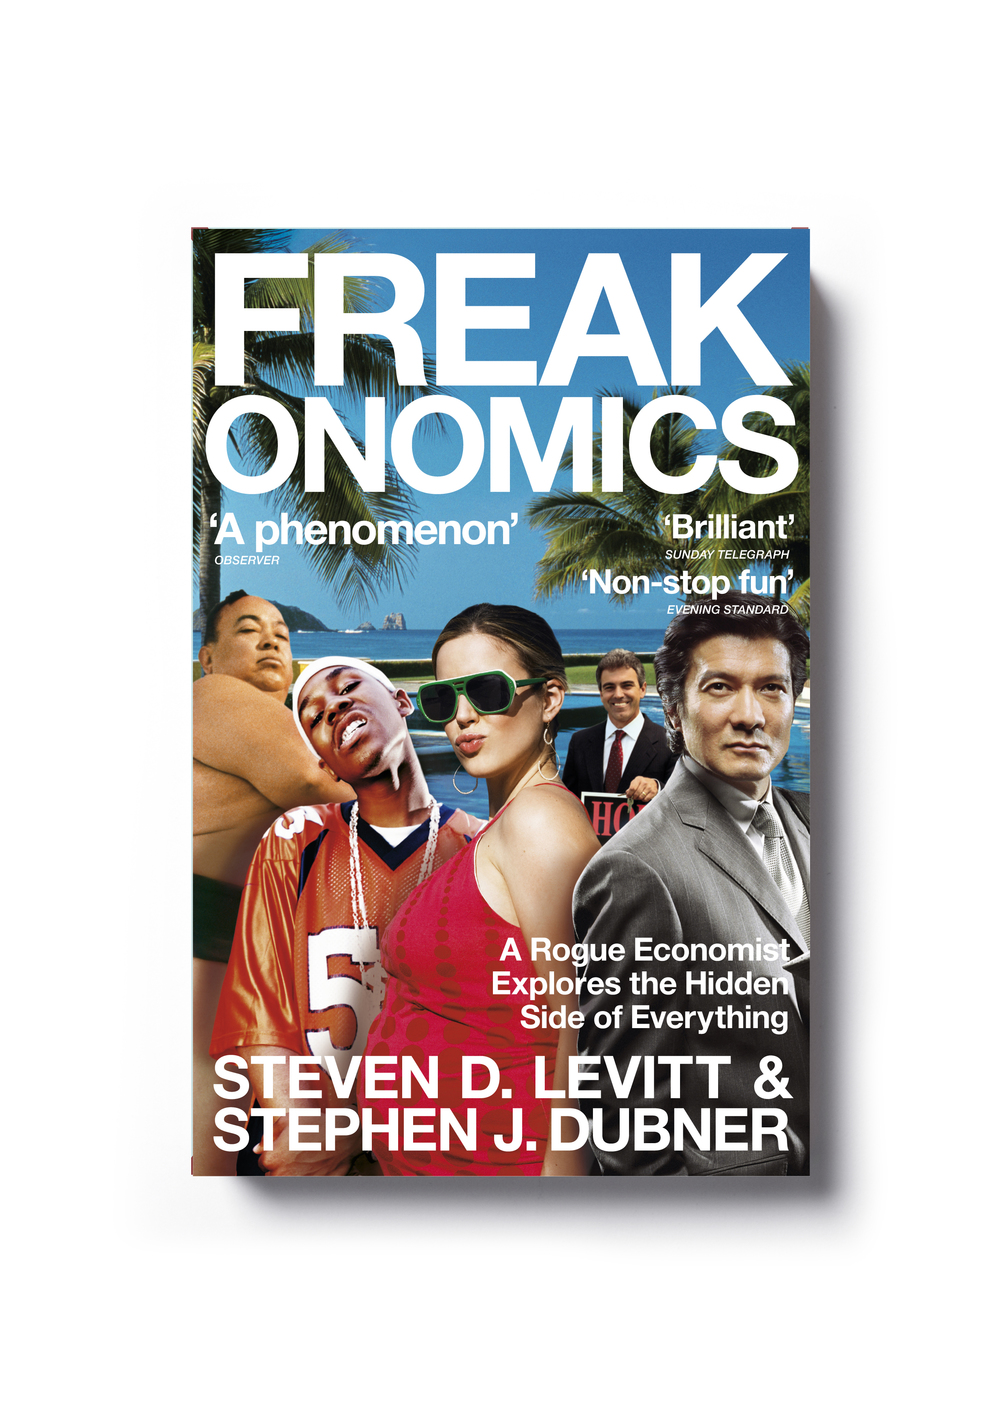 Freakonomics by Steven D. Levitt & Stephen J. Dubner (paperback)  - Art Direction: Jim Stoddart Design: Root Design